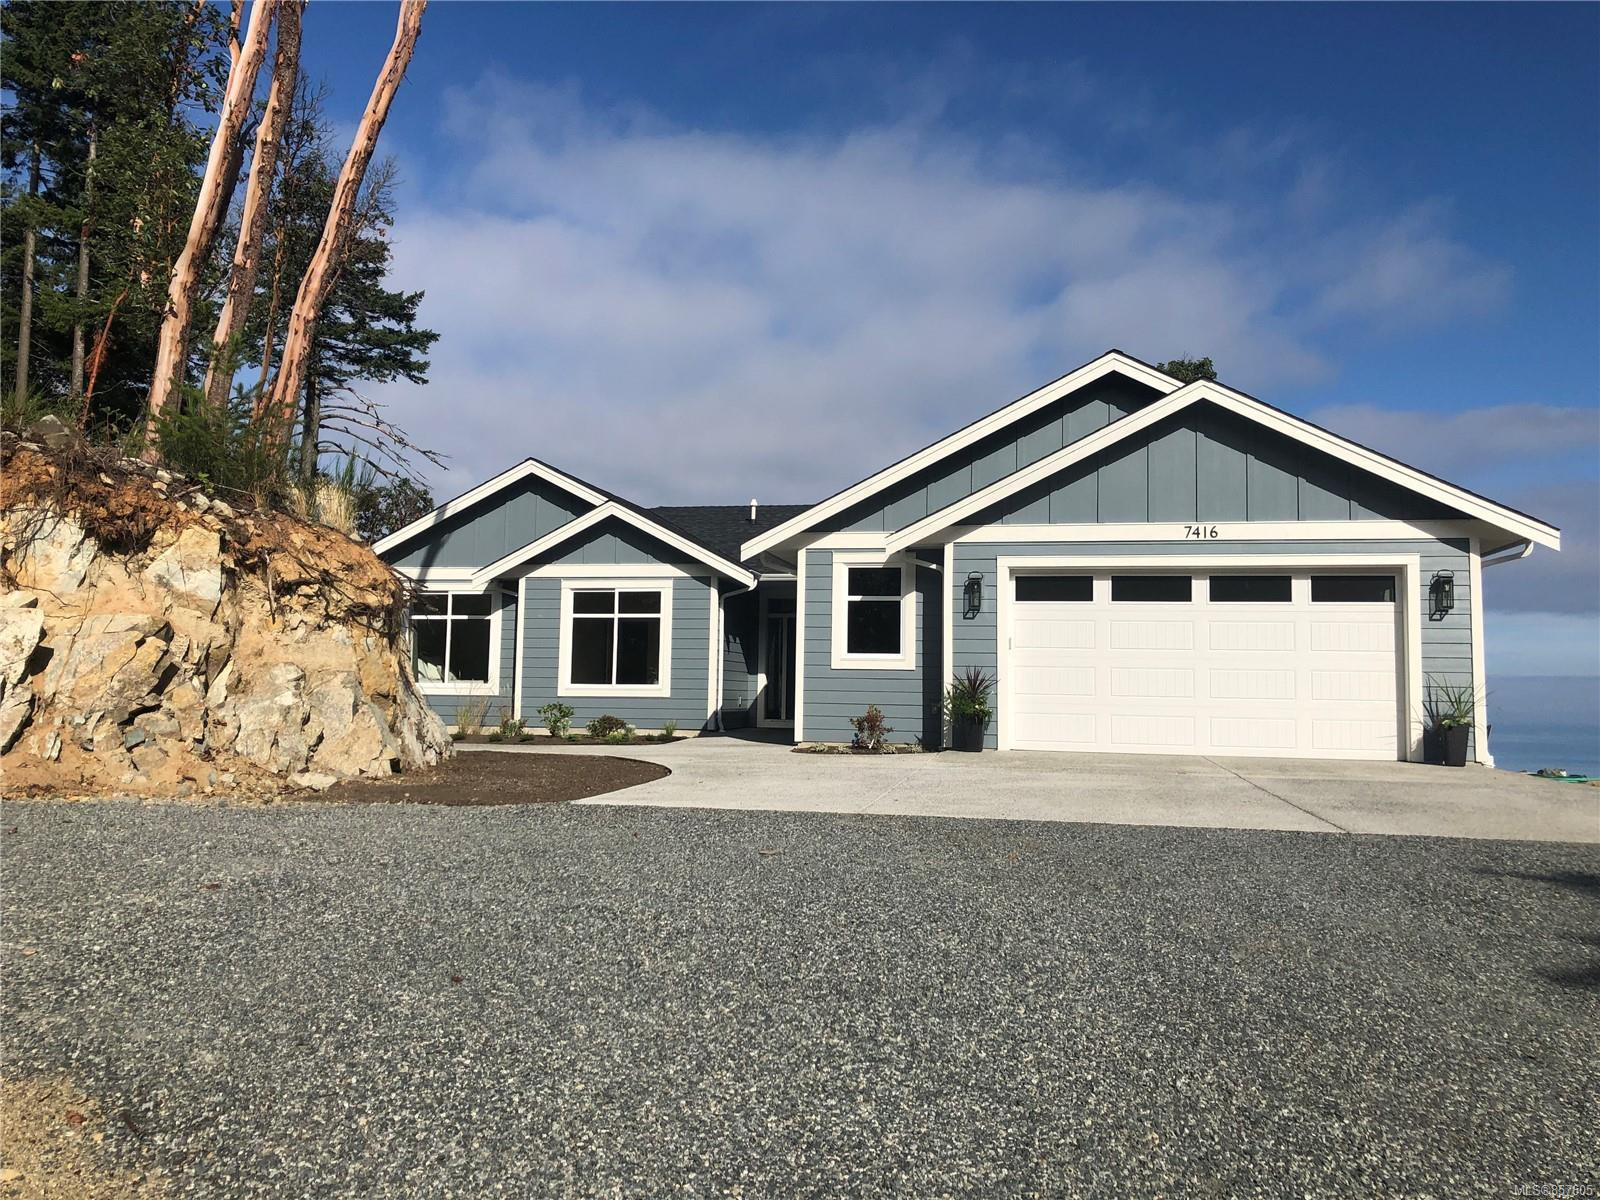 Main Photo: 7416 High Ridge Cres in : Na Upper Lantzville House for sale (Nanaimo)  : MLS®# 857605